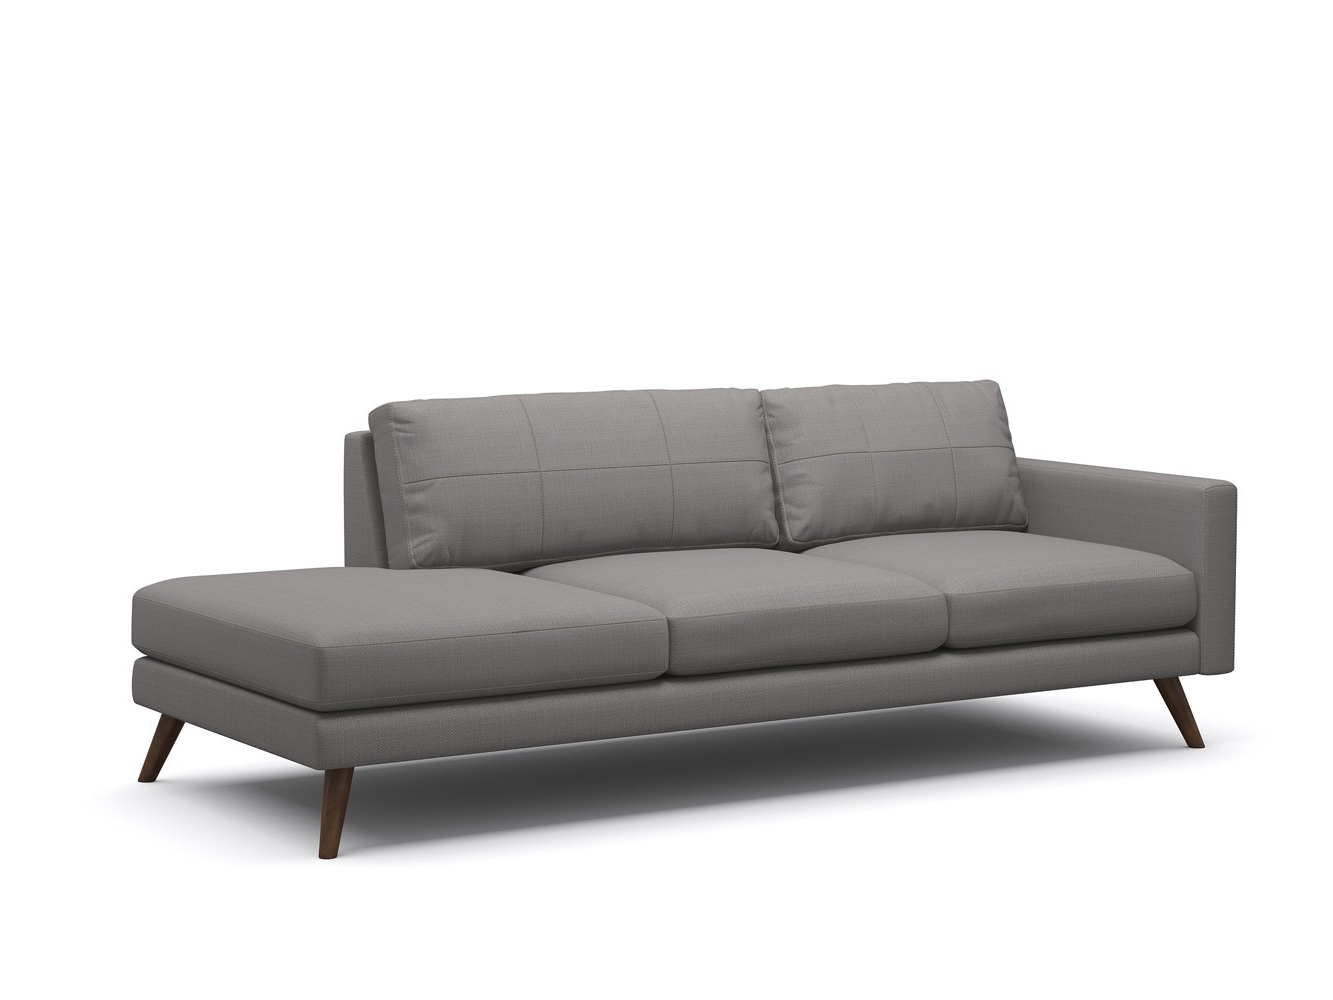 One Arm Chaises Pertaining To Fashionable Dane One Arm Sofa With Chaise Sofa – Truemodern™ (View 6 of 15)